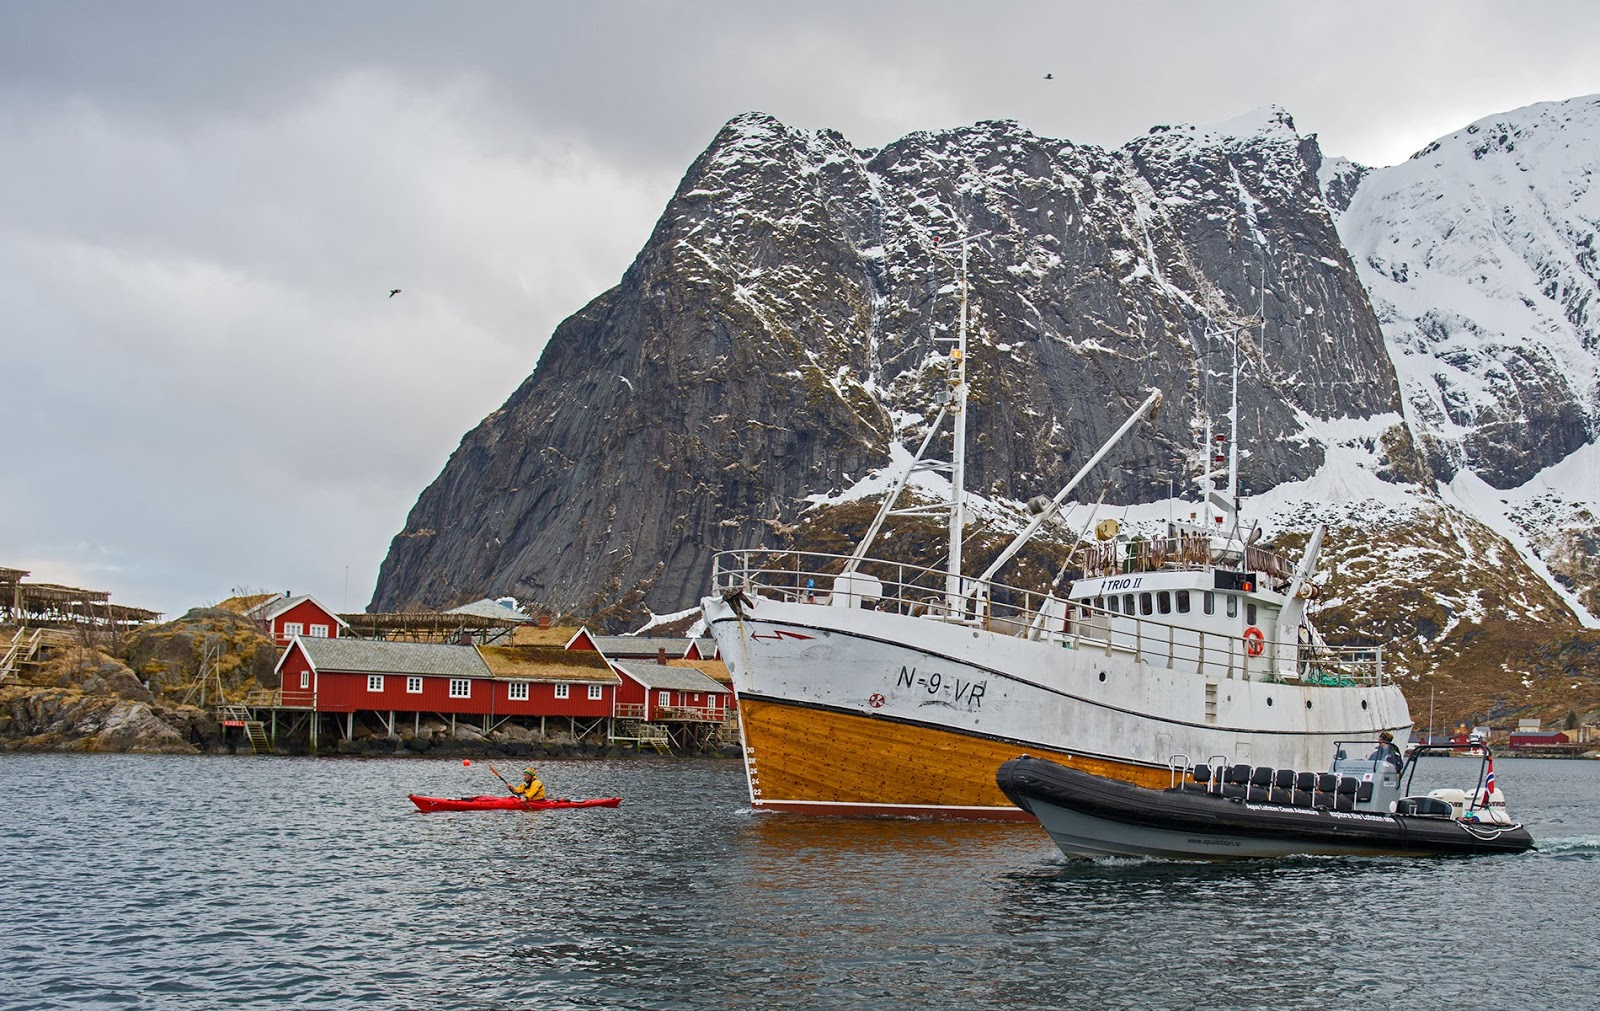 Today, Lofoten remains a center of the cod industry but fishing is a now a year-round activity on a much grander scale.